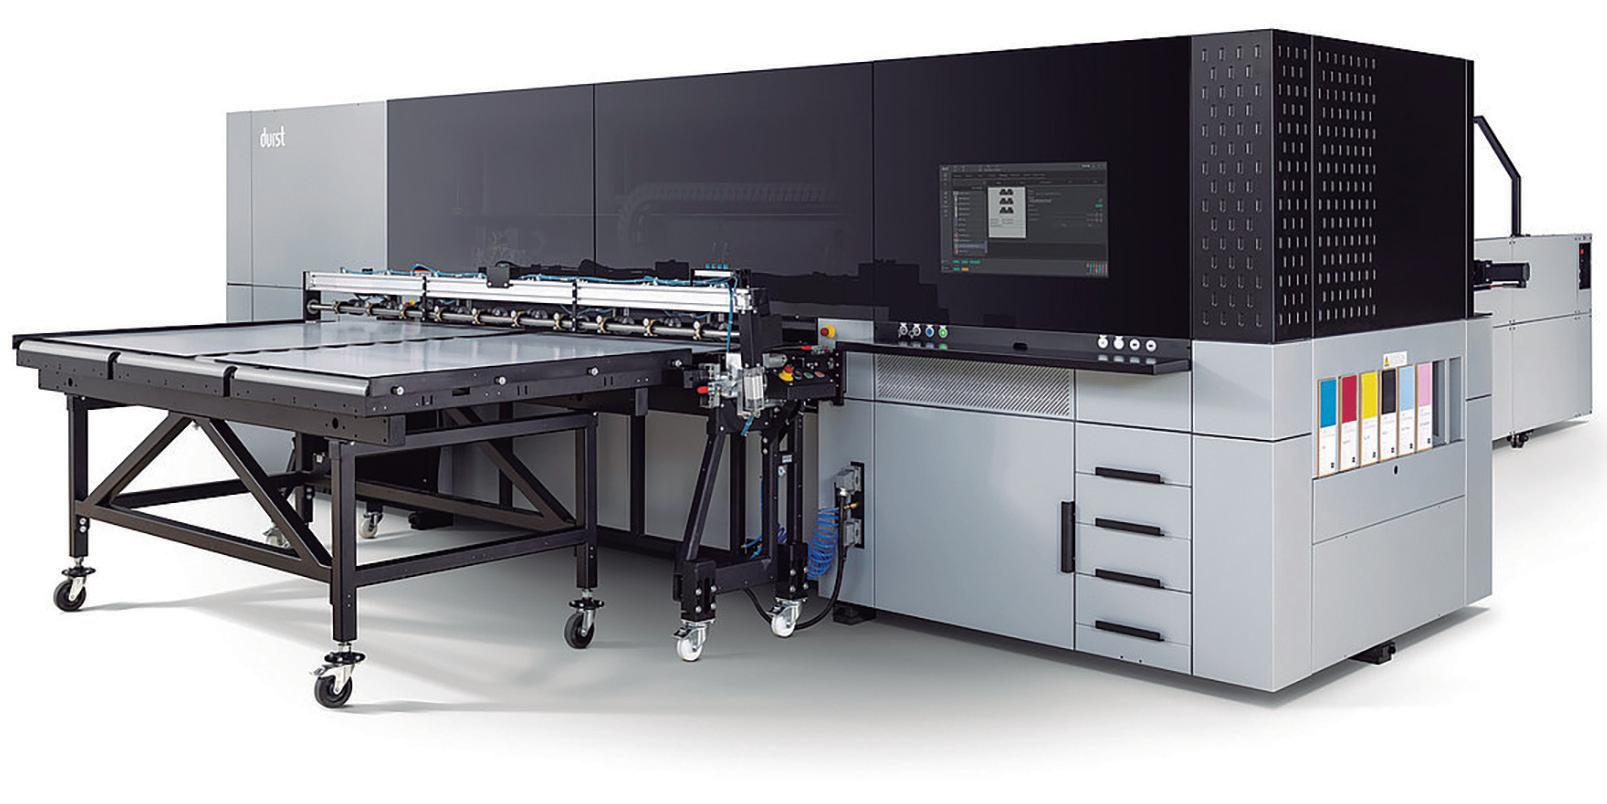 Page 30 of Durst presenta P5 250 WT